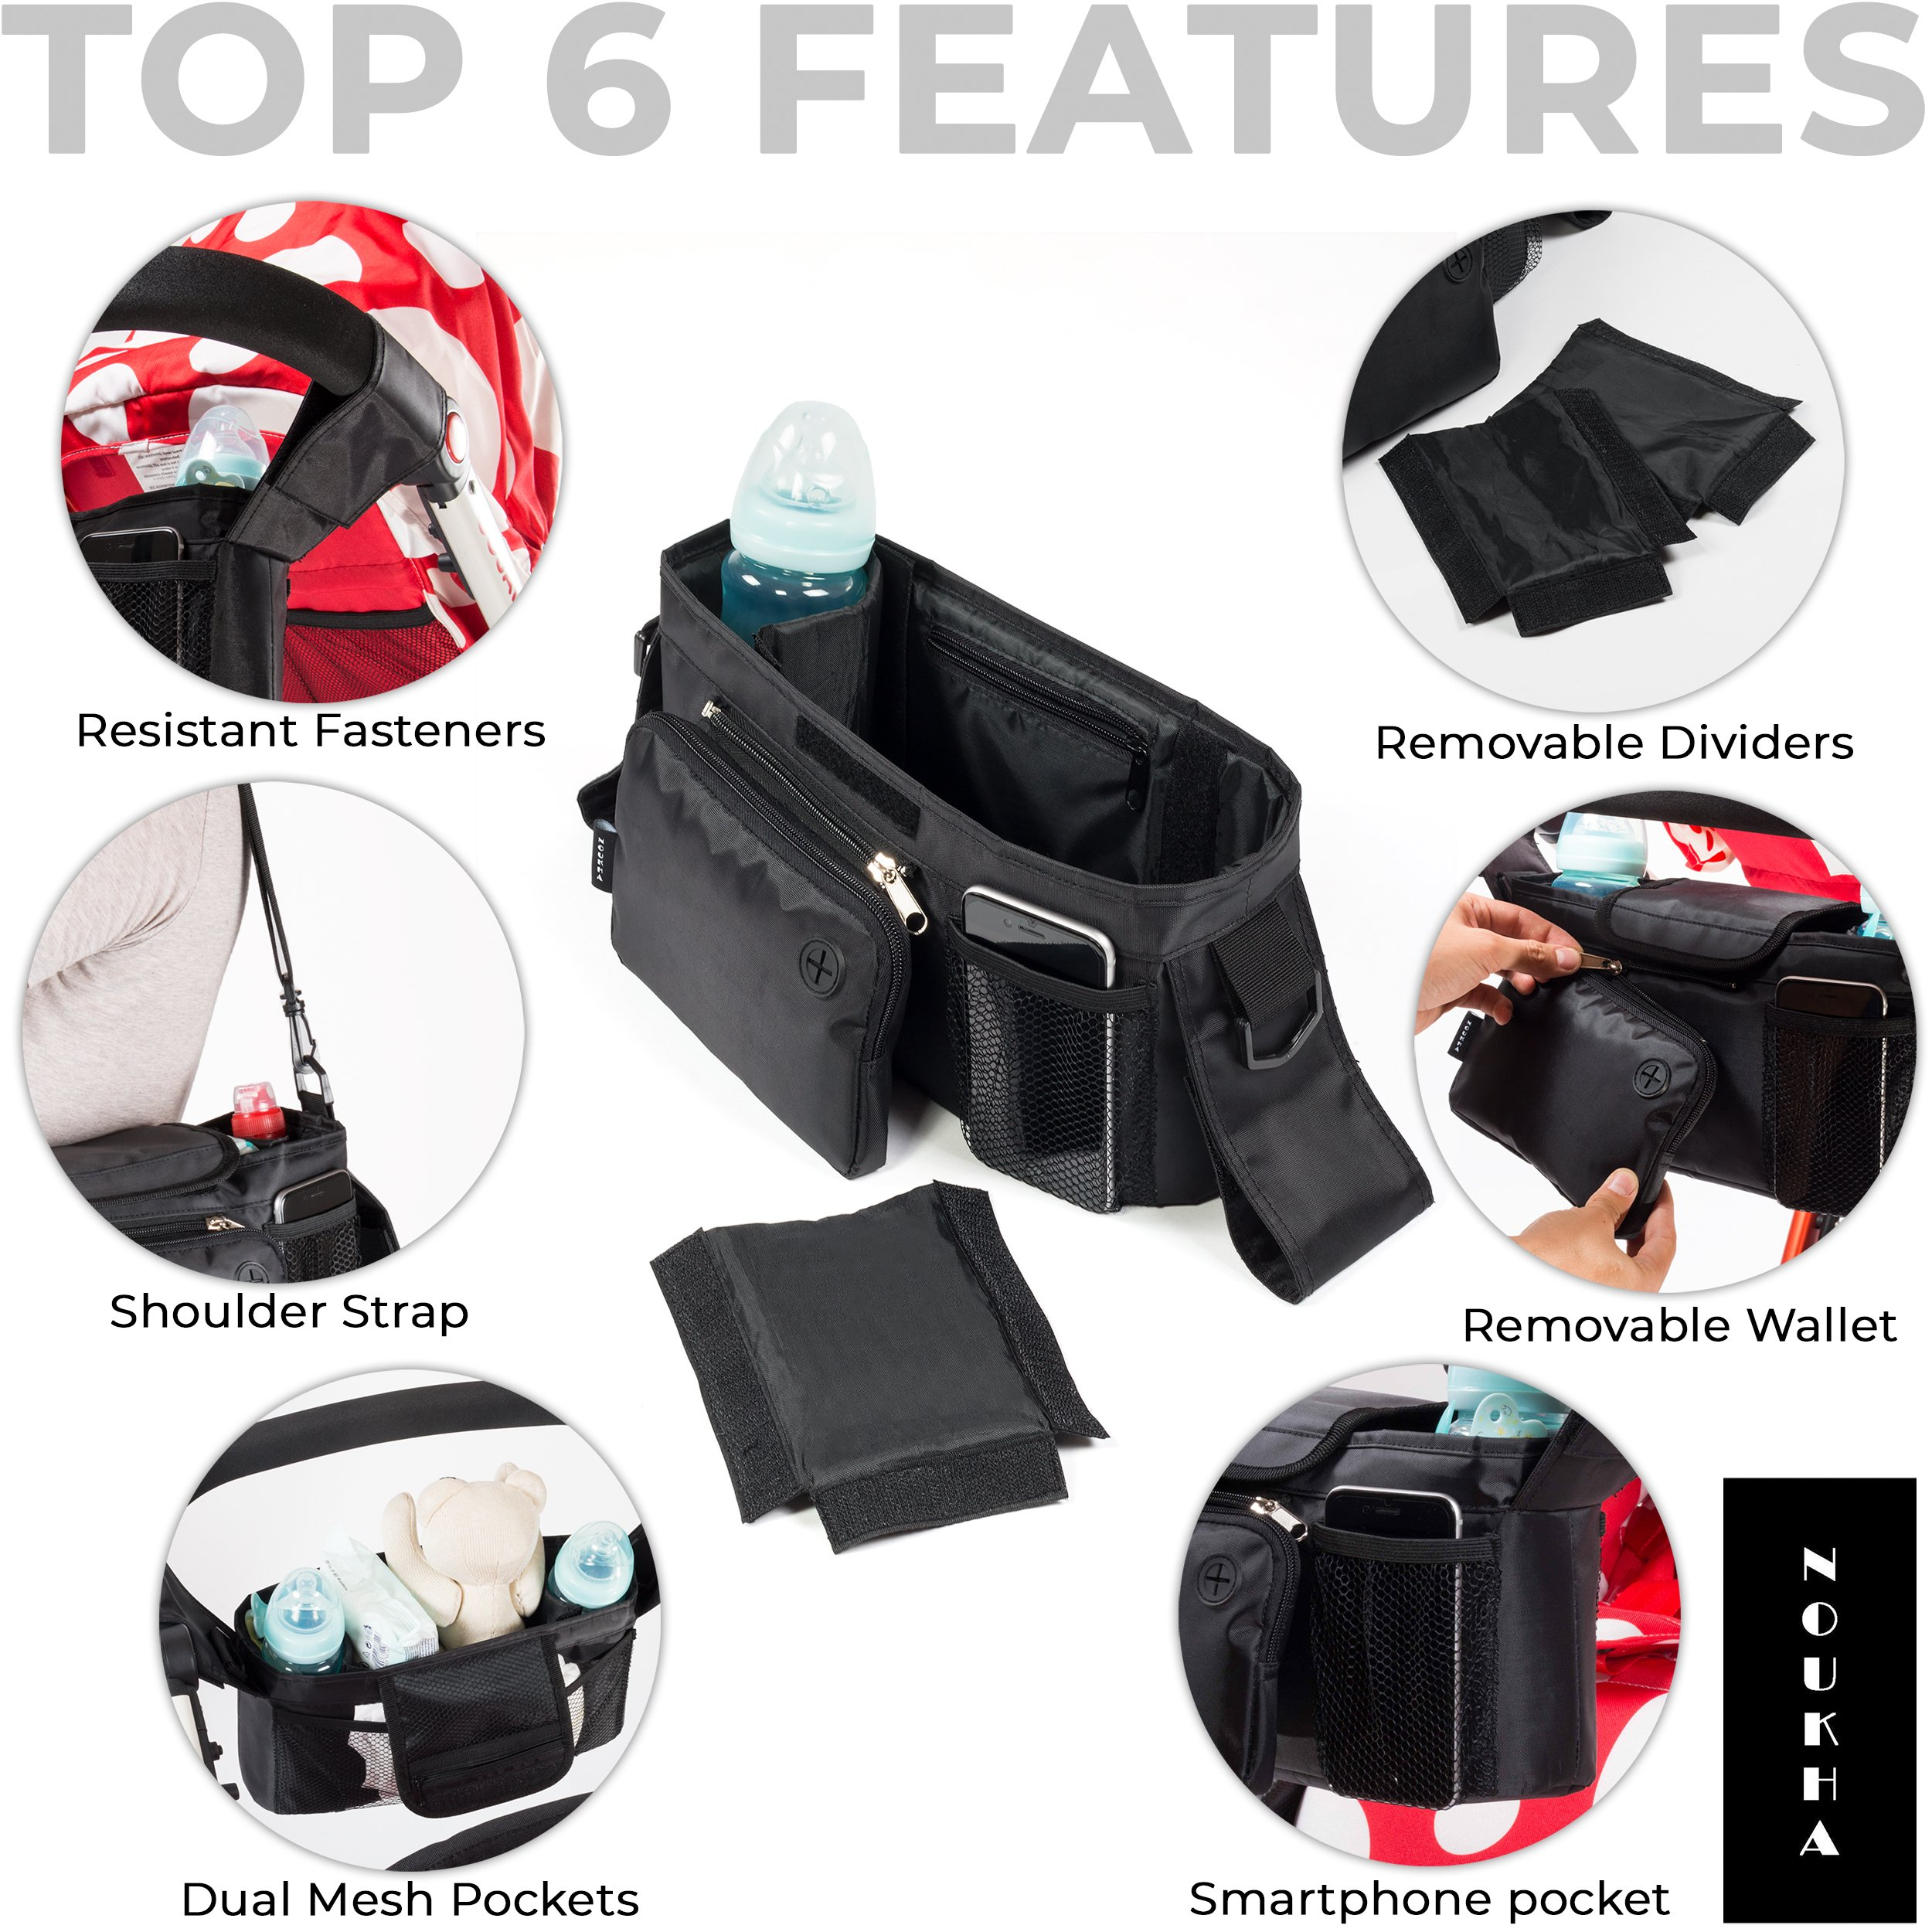 Stroller Organizer Bag -Universal Fit, Large Storage Space for Baby's Accessories and Phone, Insulated Cup Holders, Shoulder Strap, Removable Compartments, Stroller Caddy, Parent Console Organizer by Noukha (Image #2)